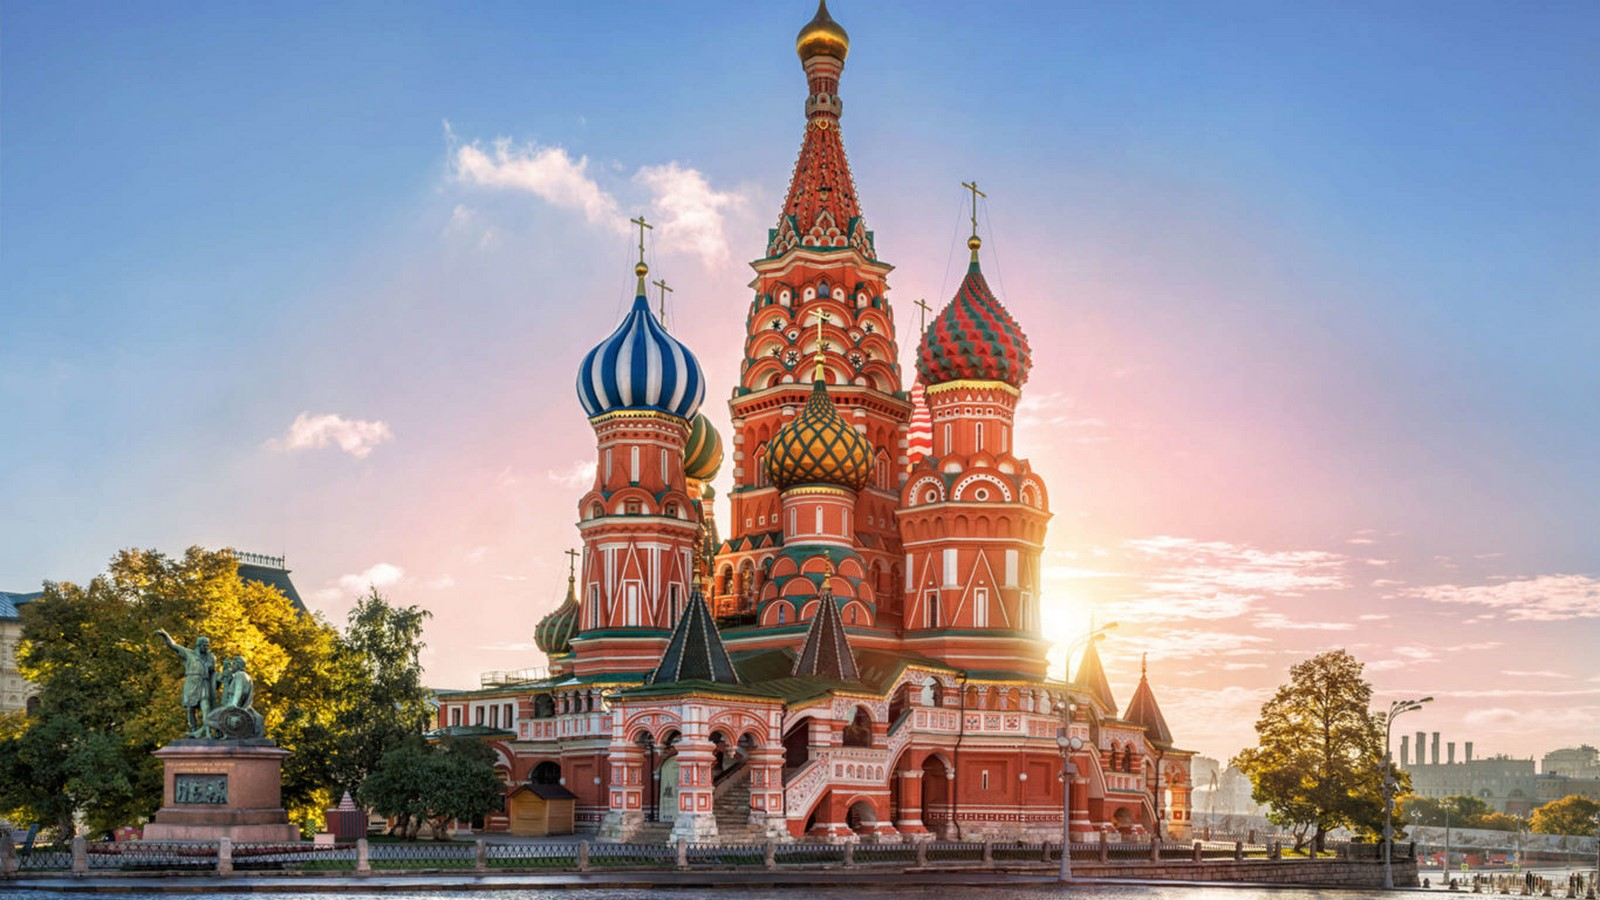 10 Structures that represent the Historical architecture of Russia - Sheet3